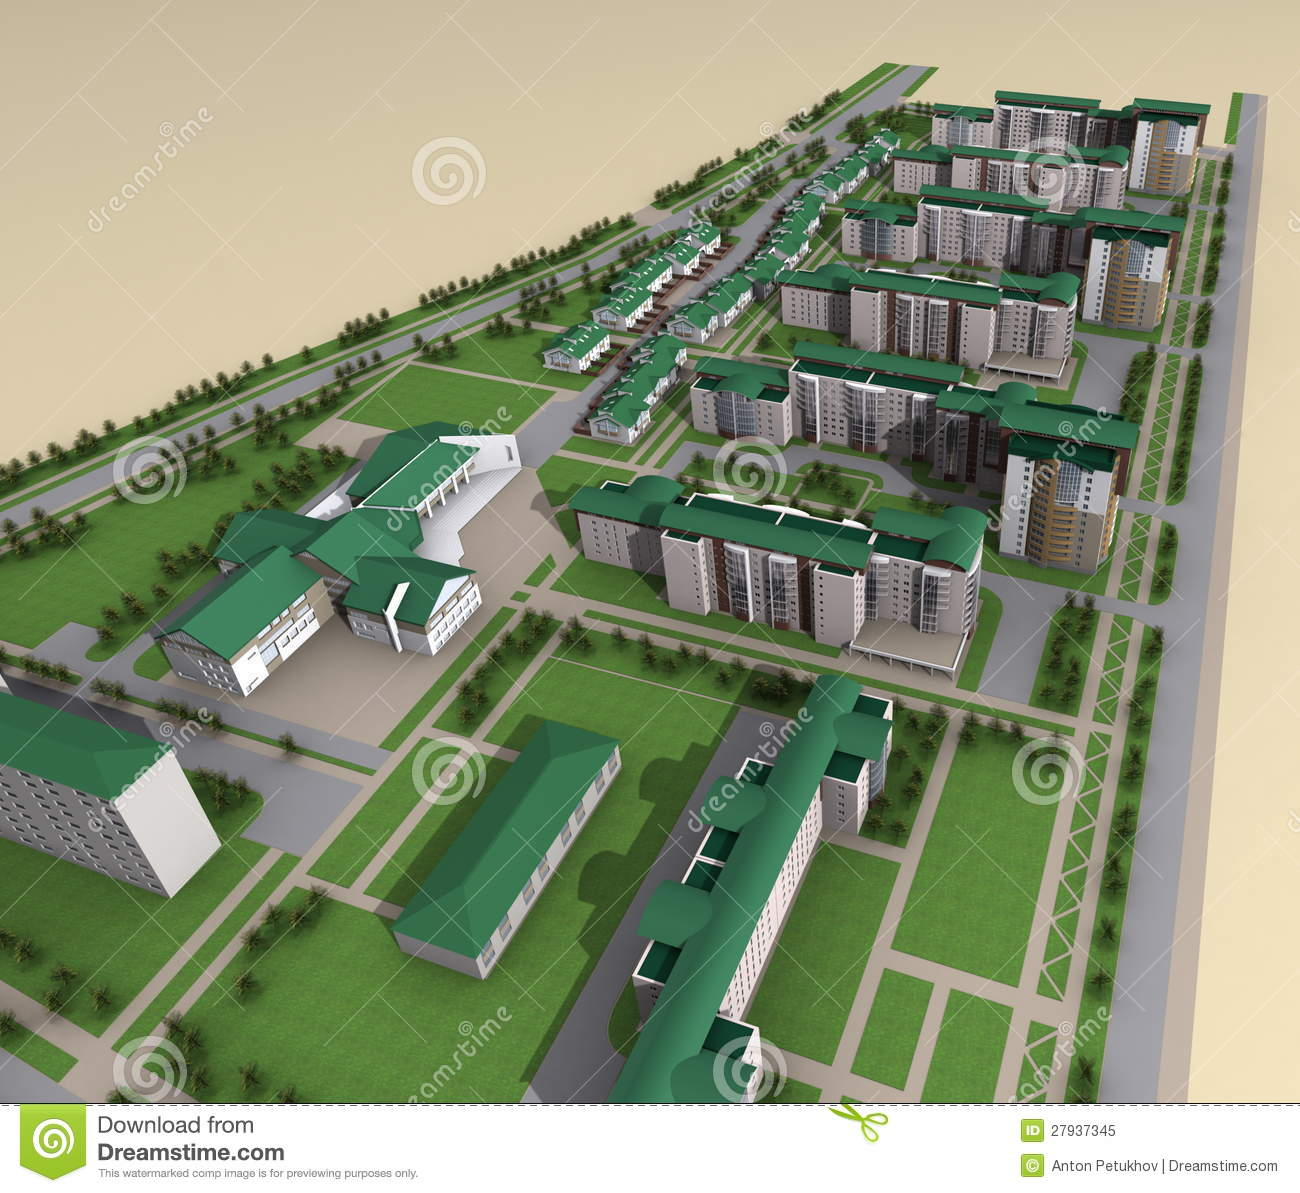 Model of modern city layout royalty free stock photo for Green plans